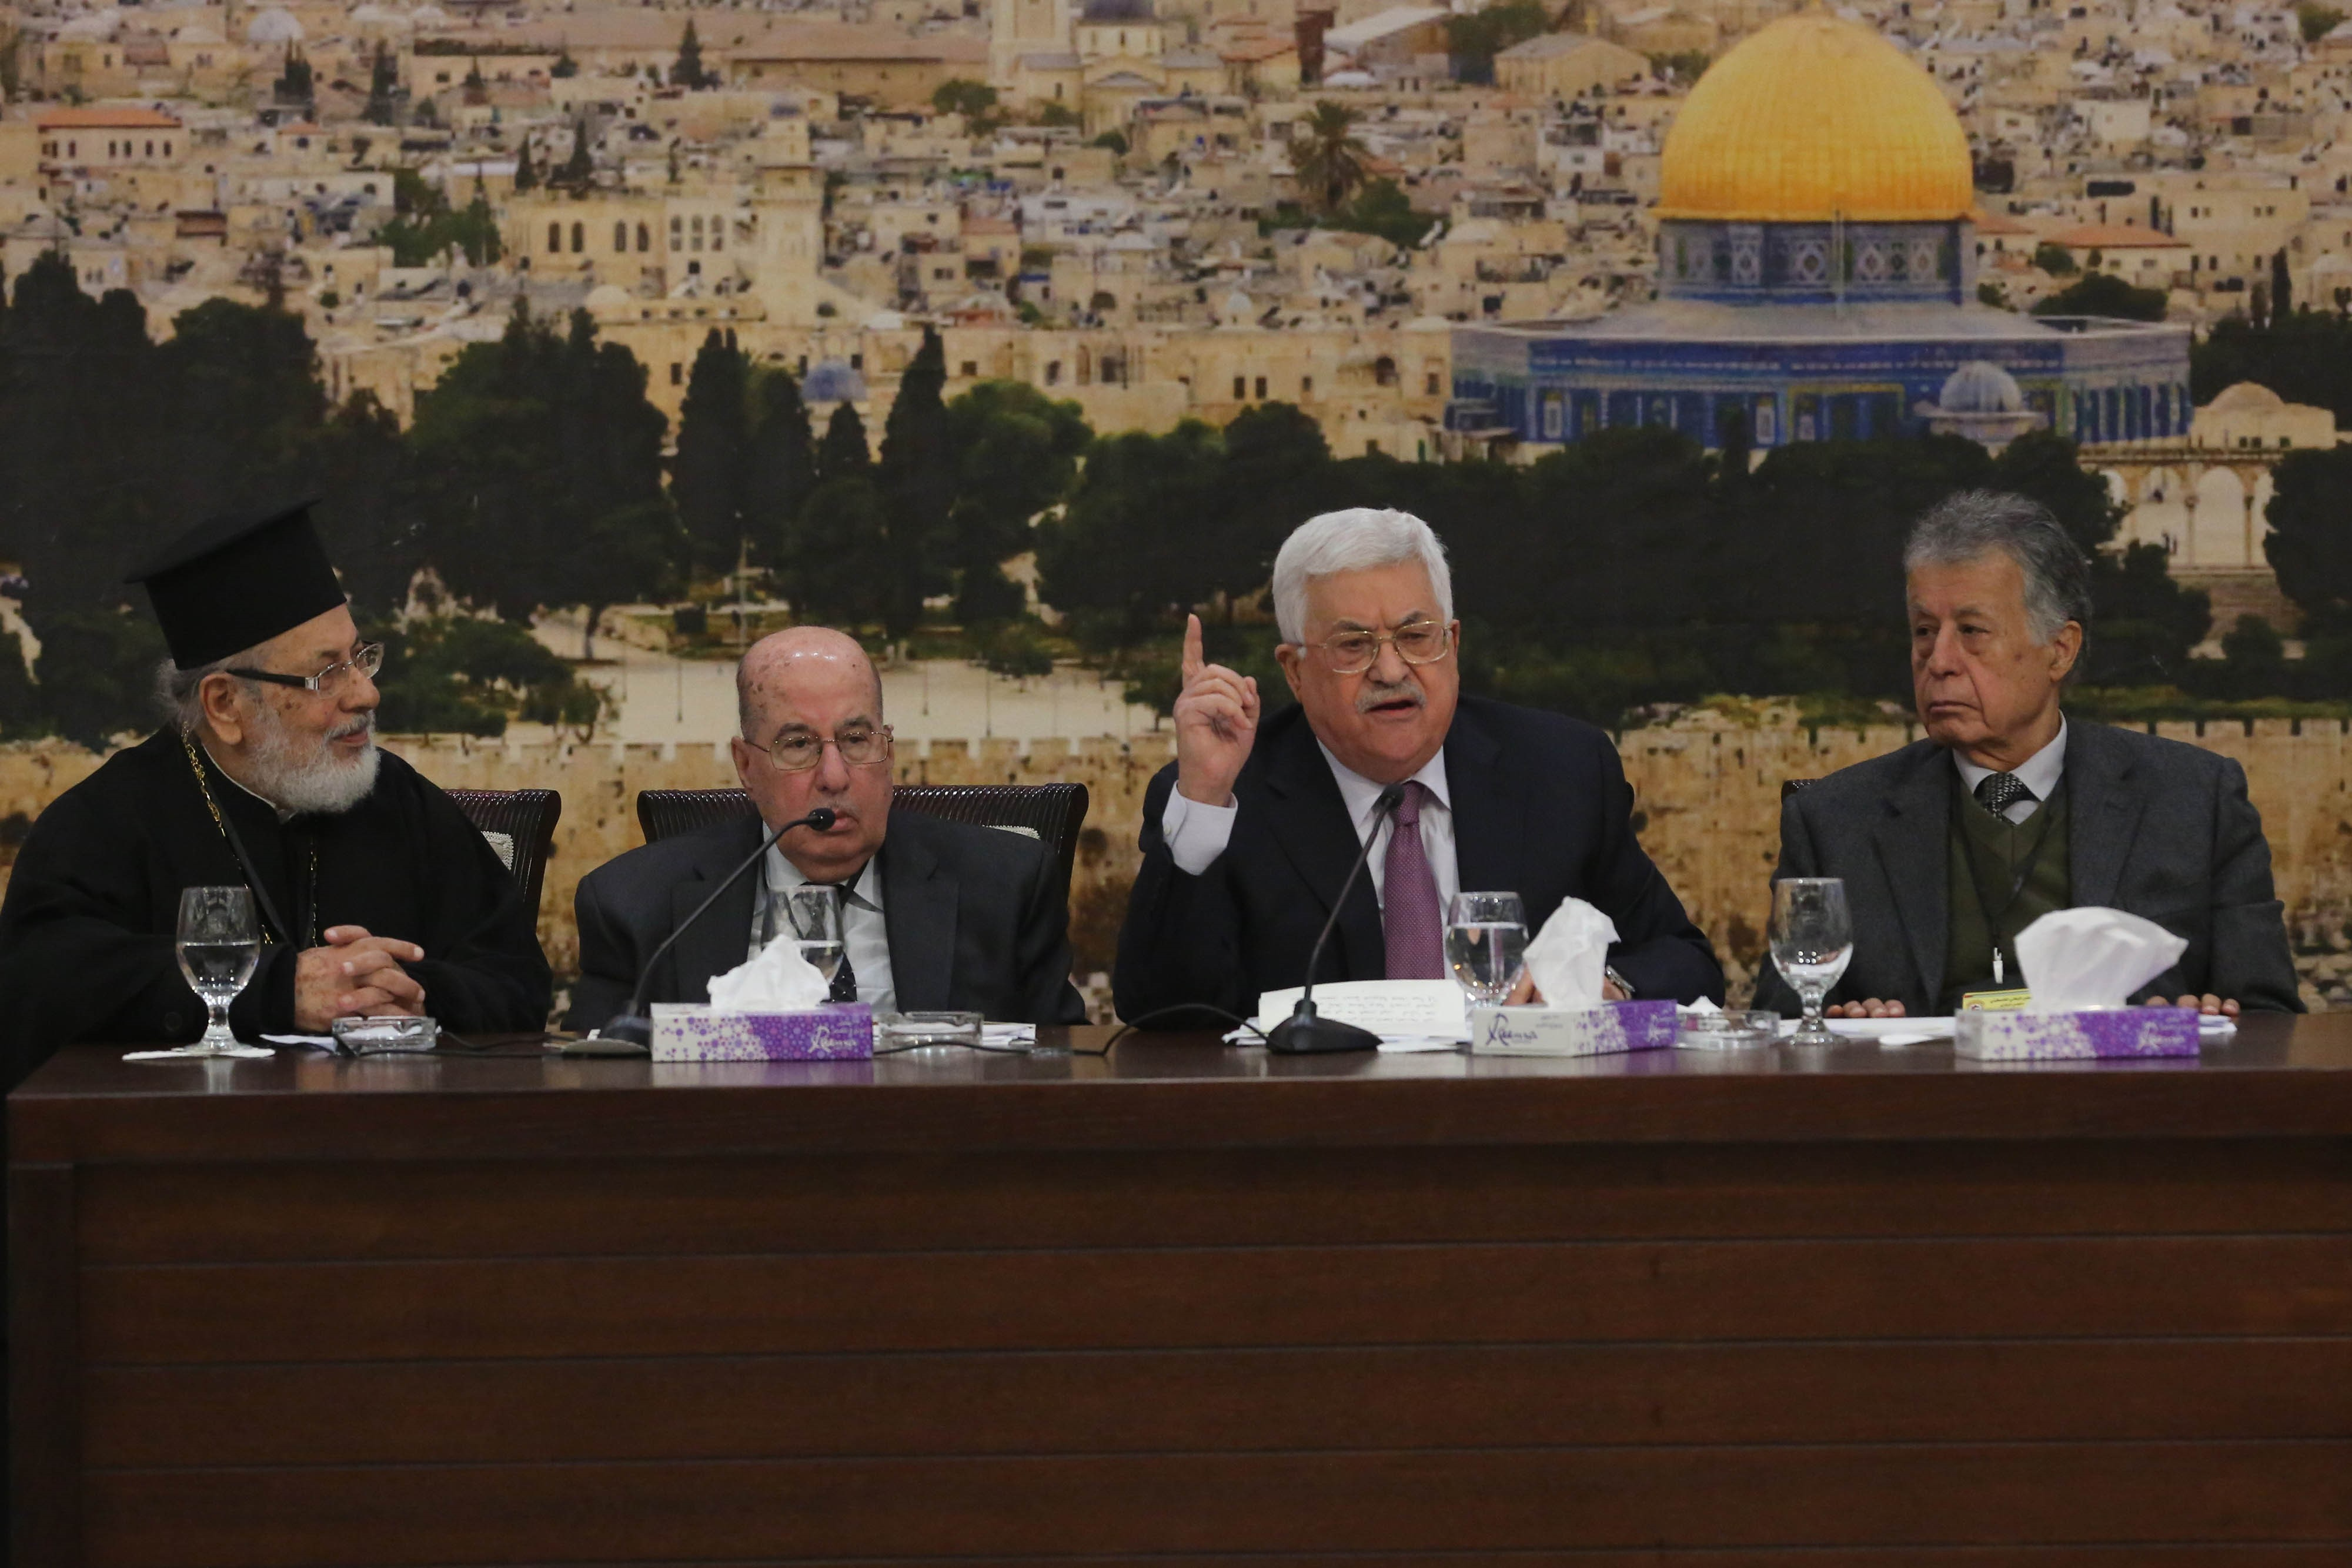 Palestinian President Mahmoud Abbas makes a speech at the 28th session of the Palestinian Central Council, in Ramallah, West Bank on Jan. 14, 2018.